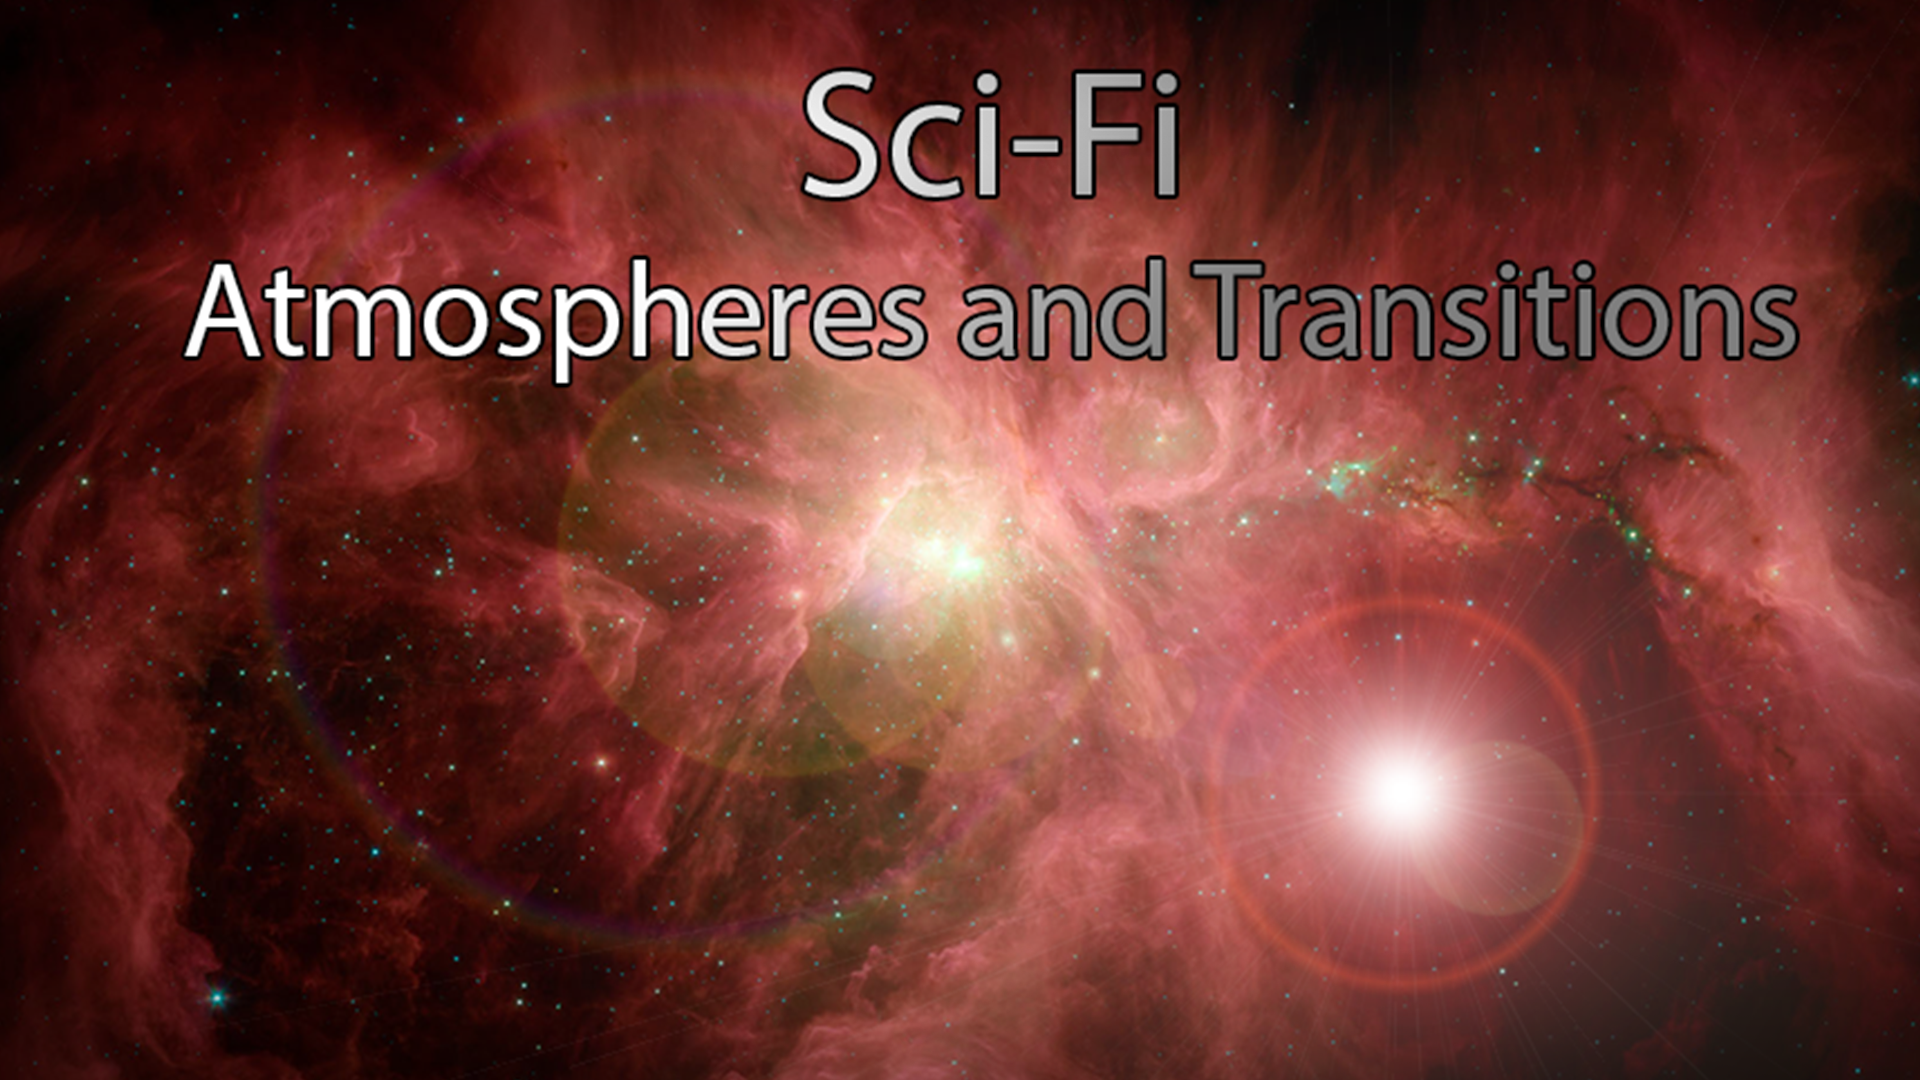 Atmospheres/Effects for Sci-Fi, by Taylor Brook Music